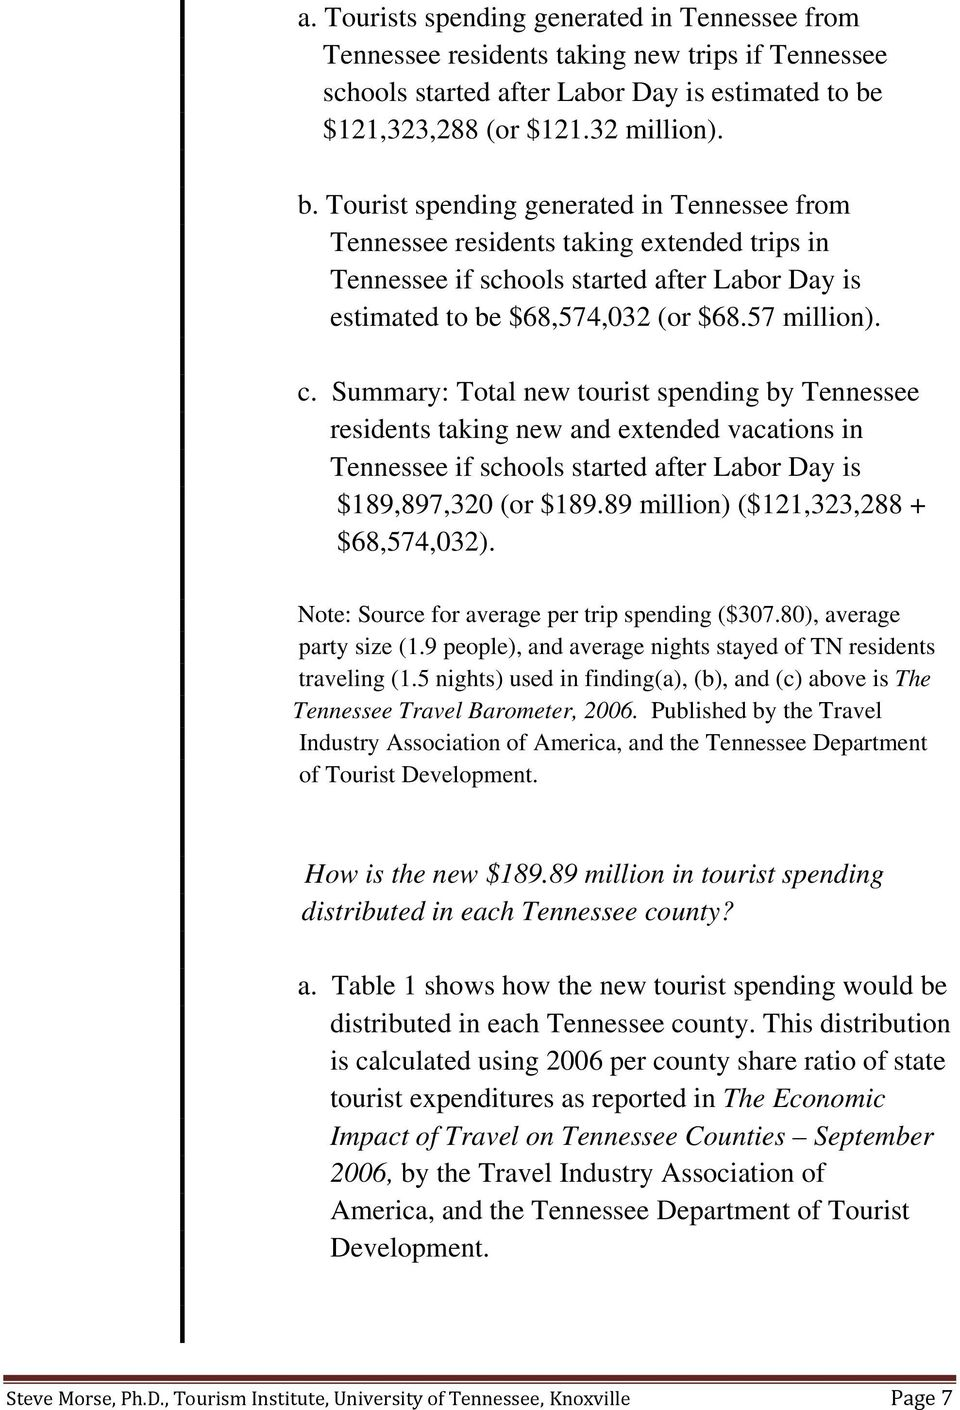 Tourist spending generated in Tennessee from Tennessee residents taking extended trips in Tennessee if schools started after Labor Day is estimated to be $68,574,032 (or $68.57 million). c.